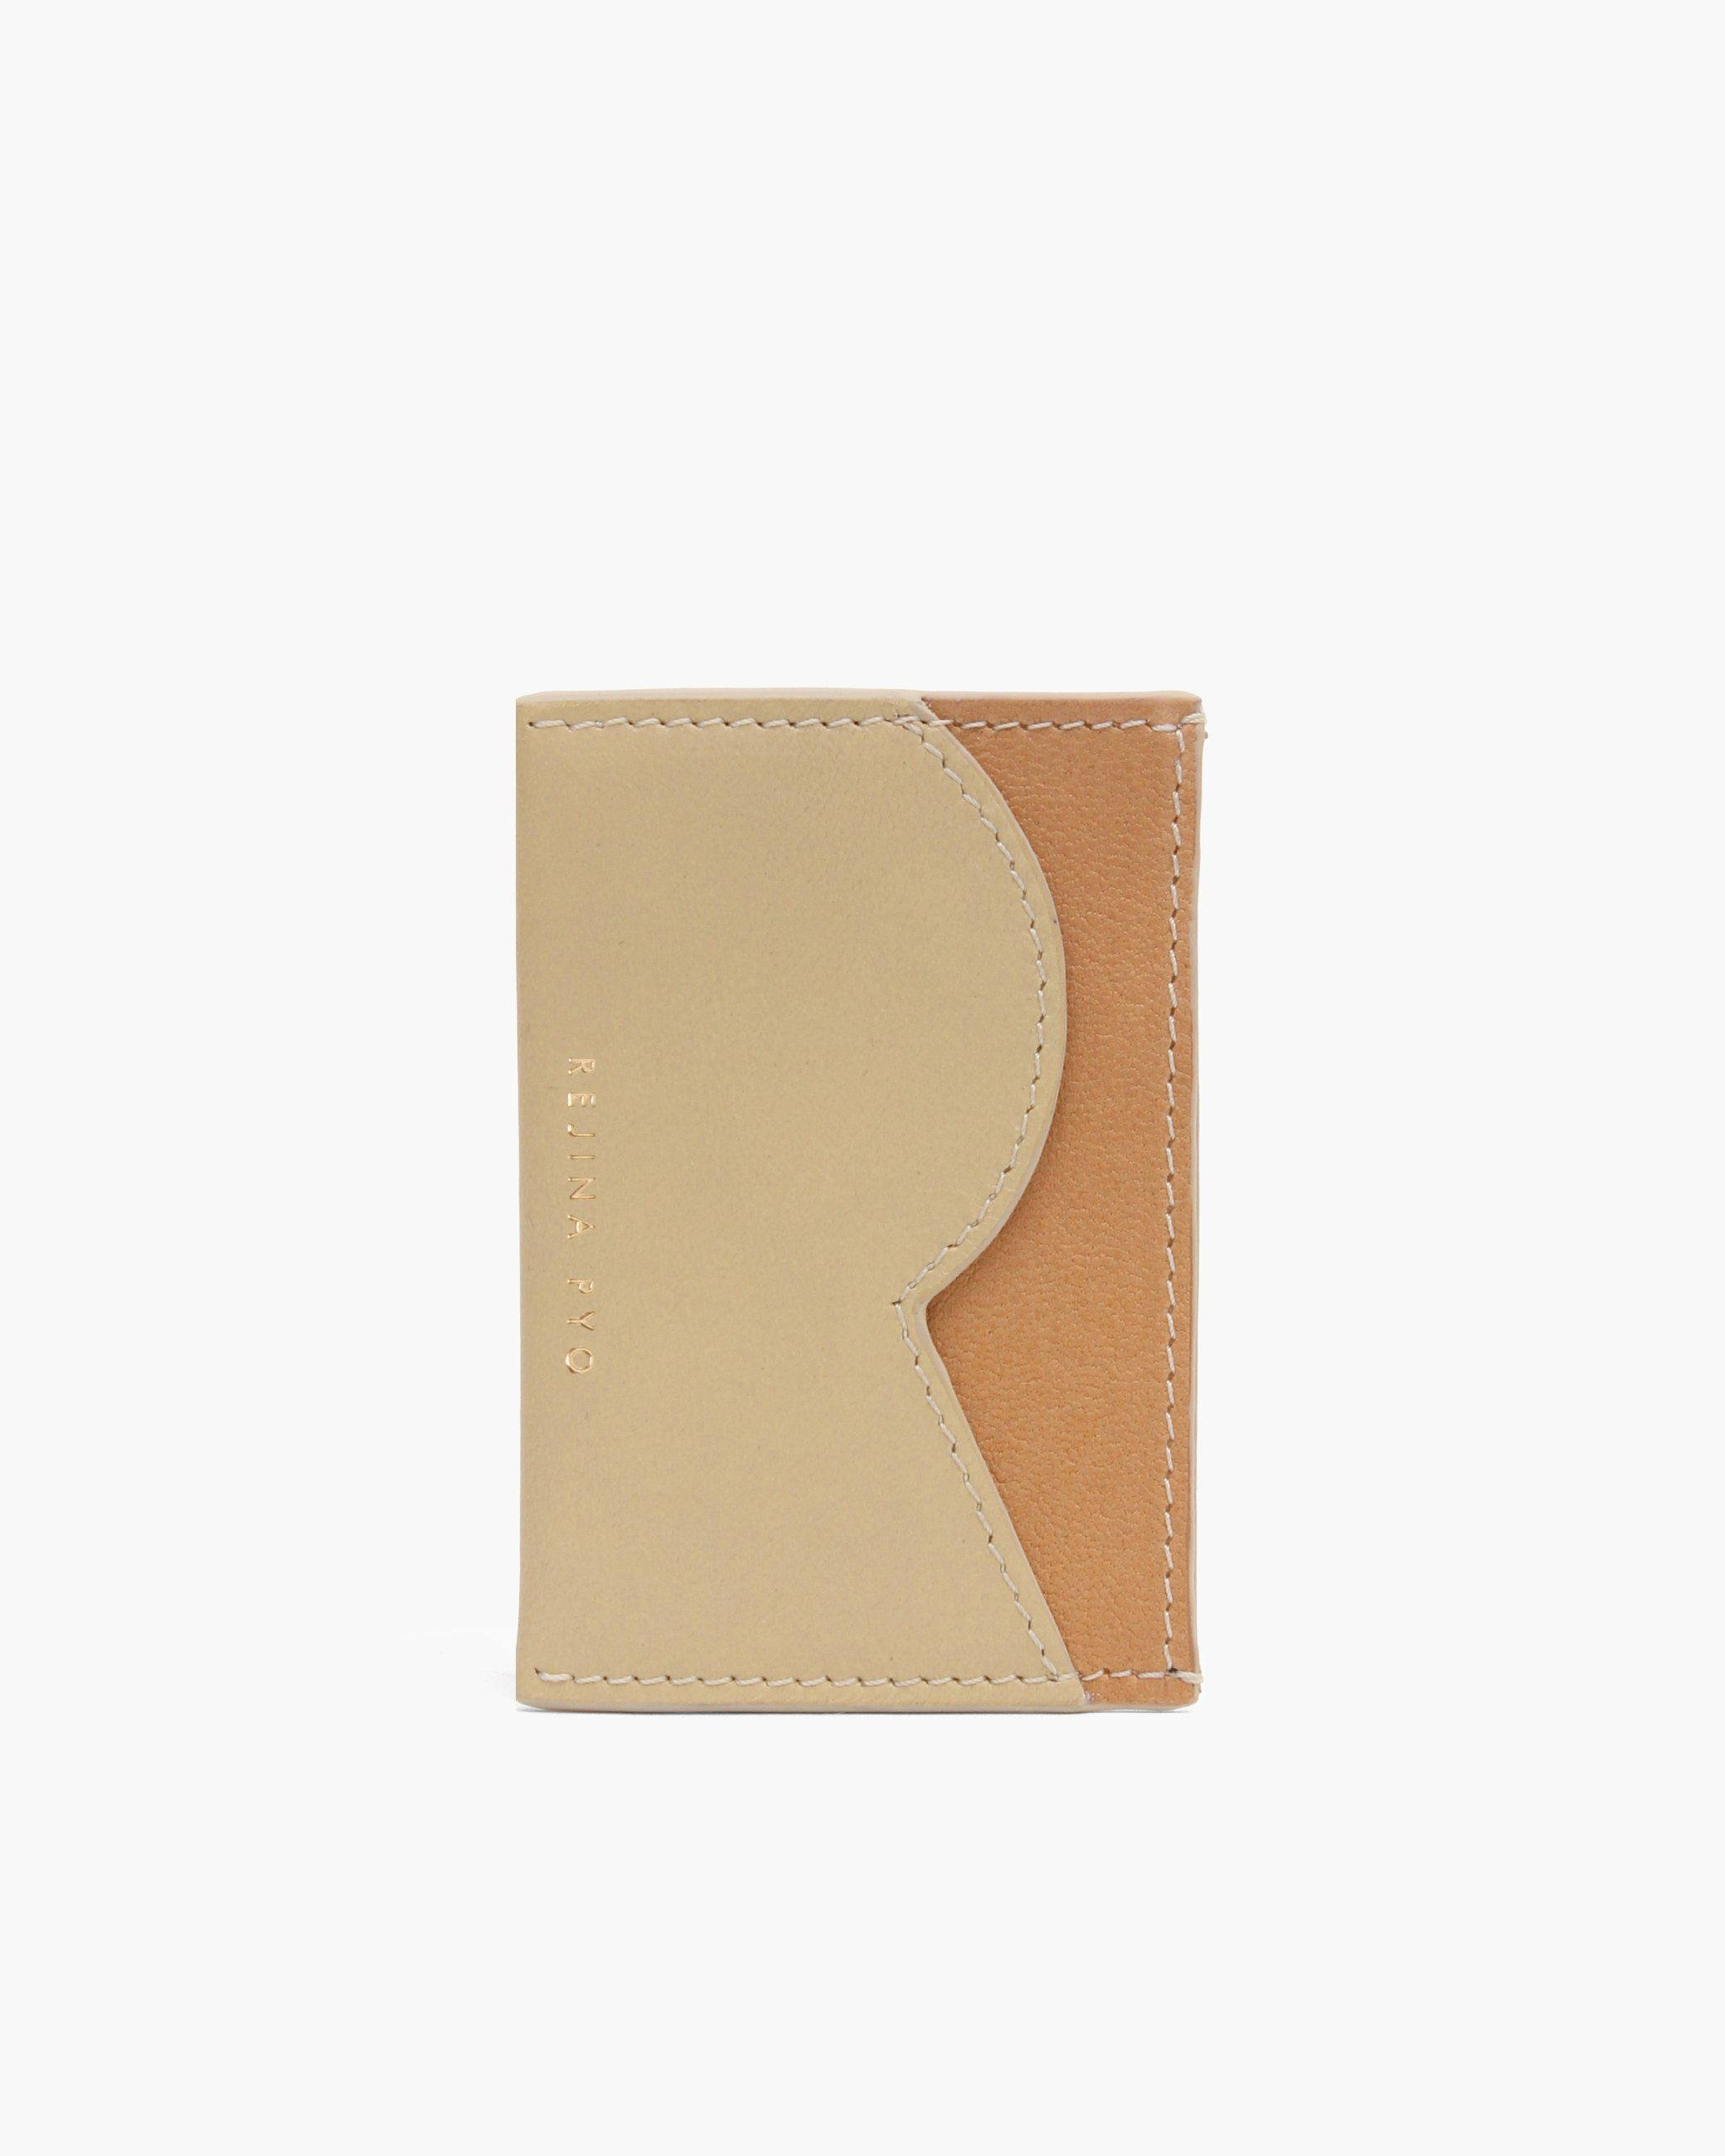 RP Card Holder Leather Beige + Tan + Ivory